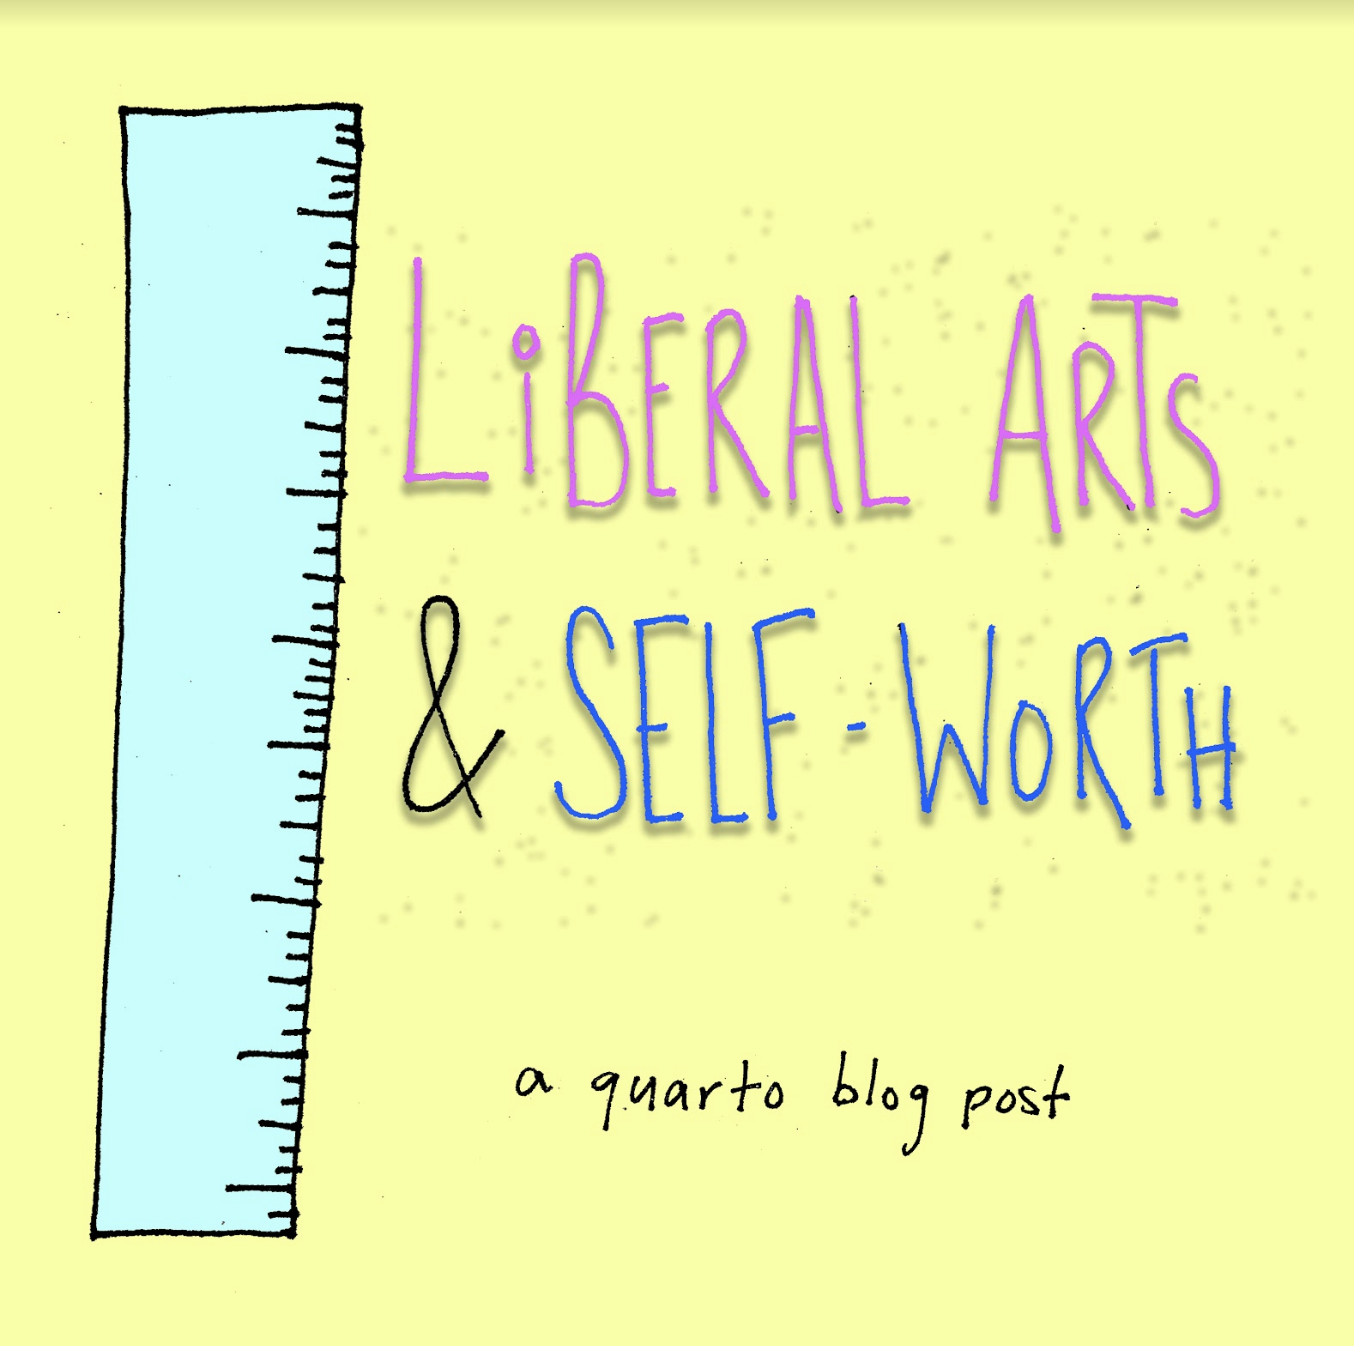 Liberal Arts and Self Worth  by Jane Paknia  In three weeks, I will have finished my first year as a college student. There are many significant differences between my understanding of myself now and that understanding just one year ago, as I finalized my college decisions and considered my place in this world.